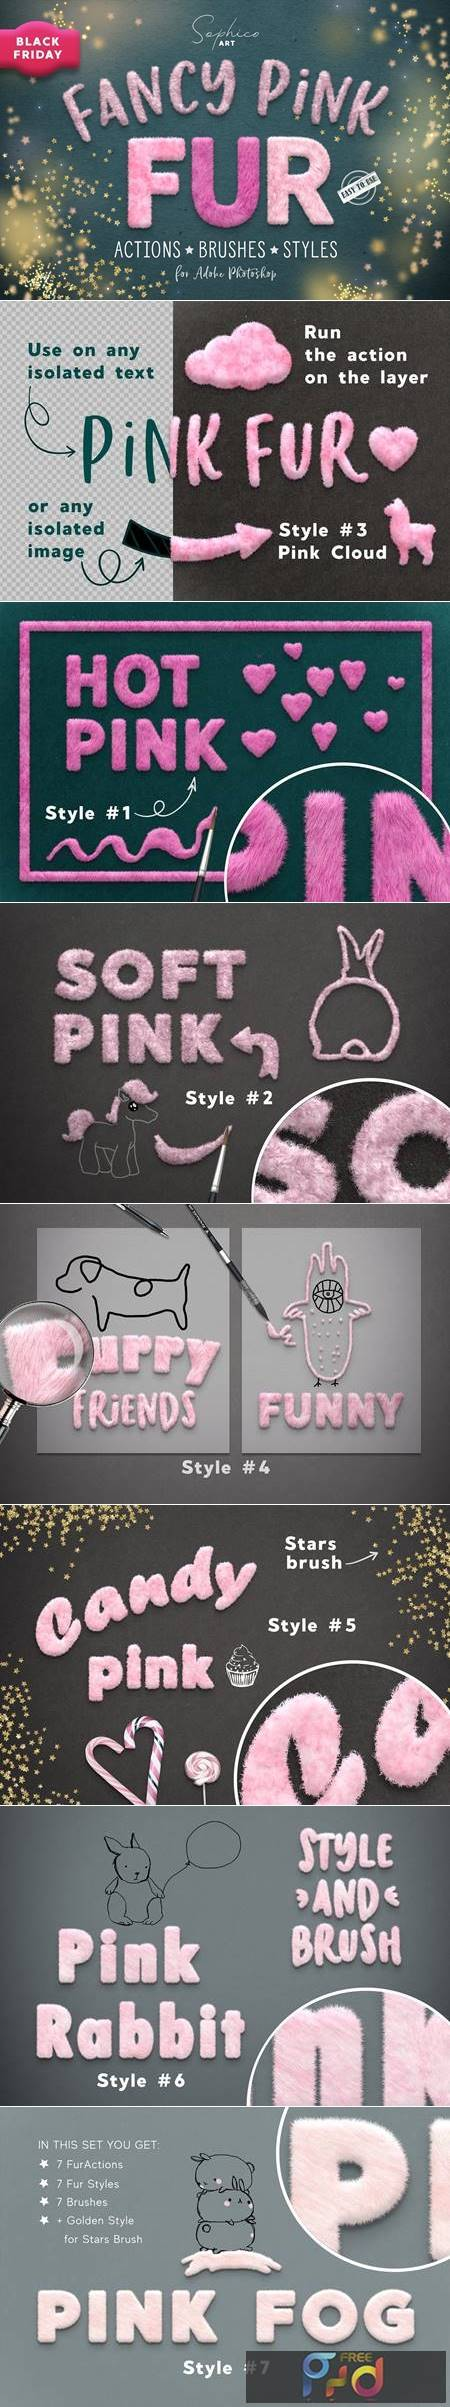 Fanсy Pink Fur Photoshop Effect 5611085 1